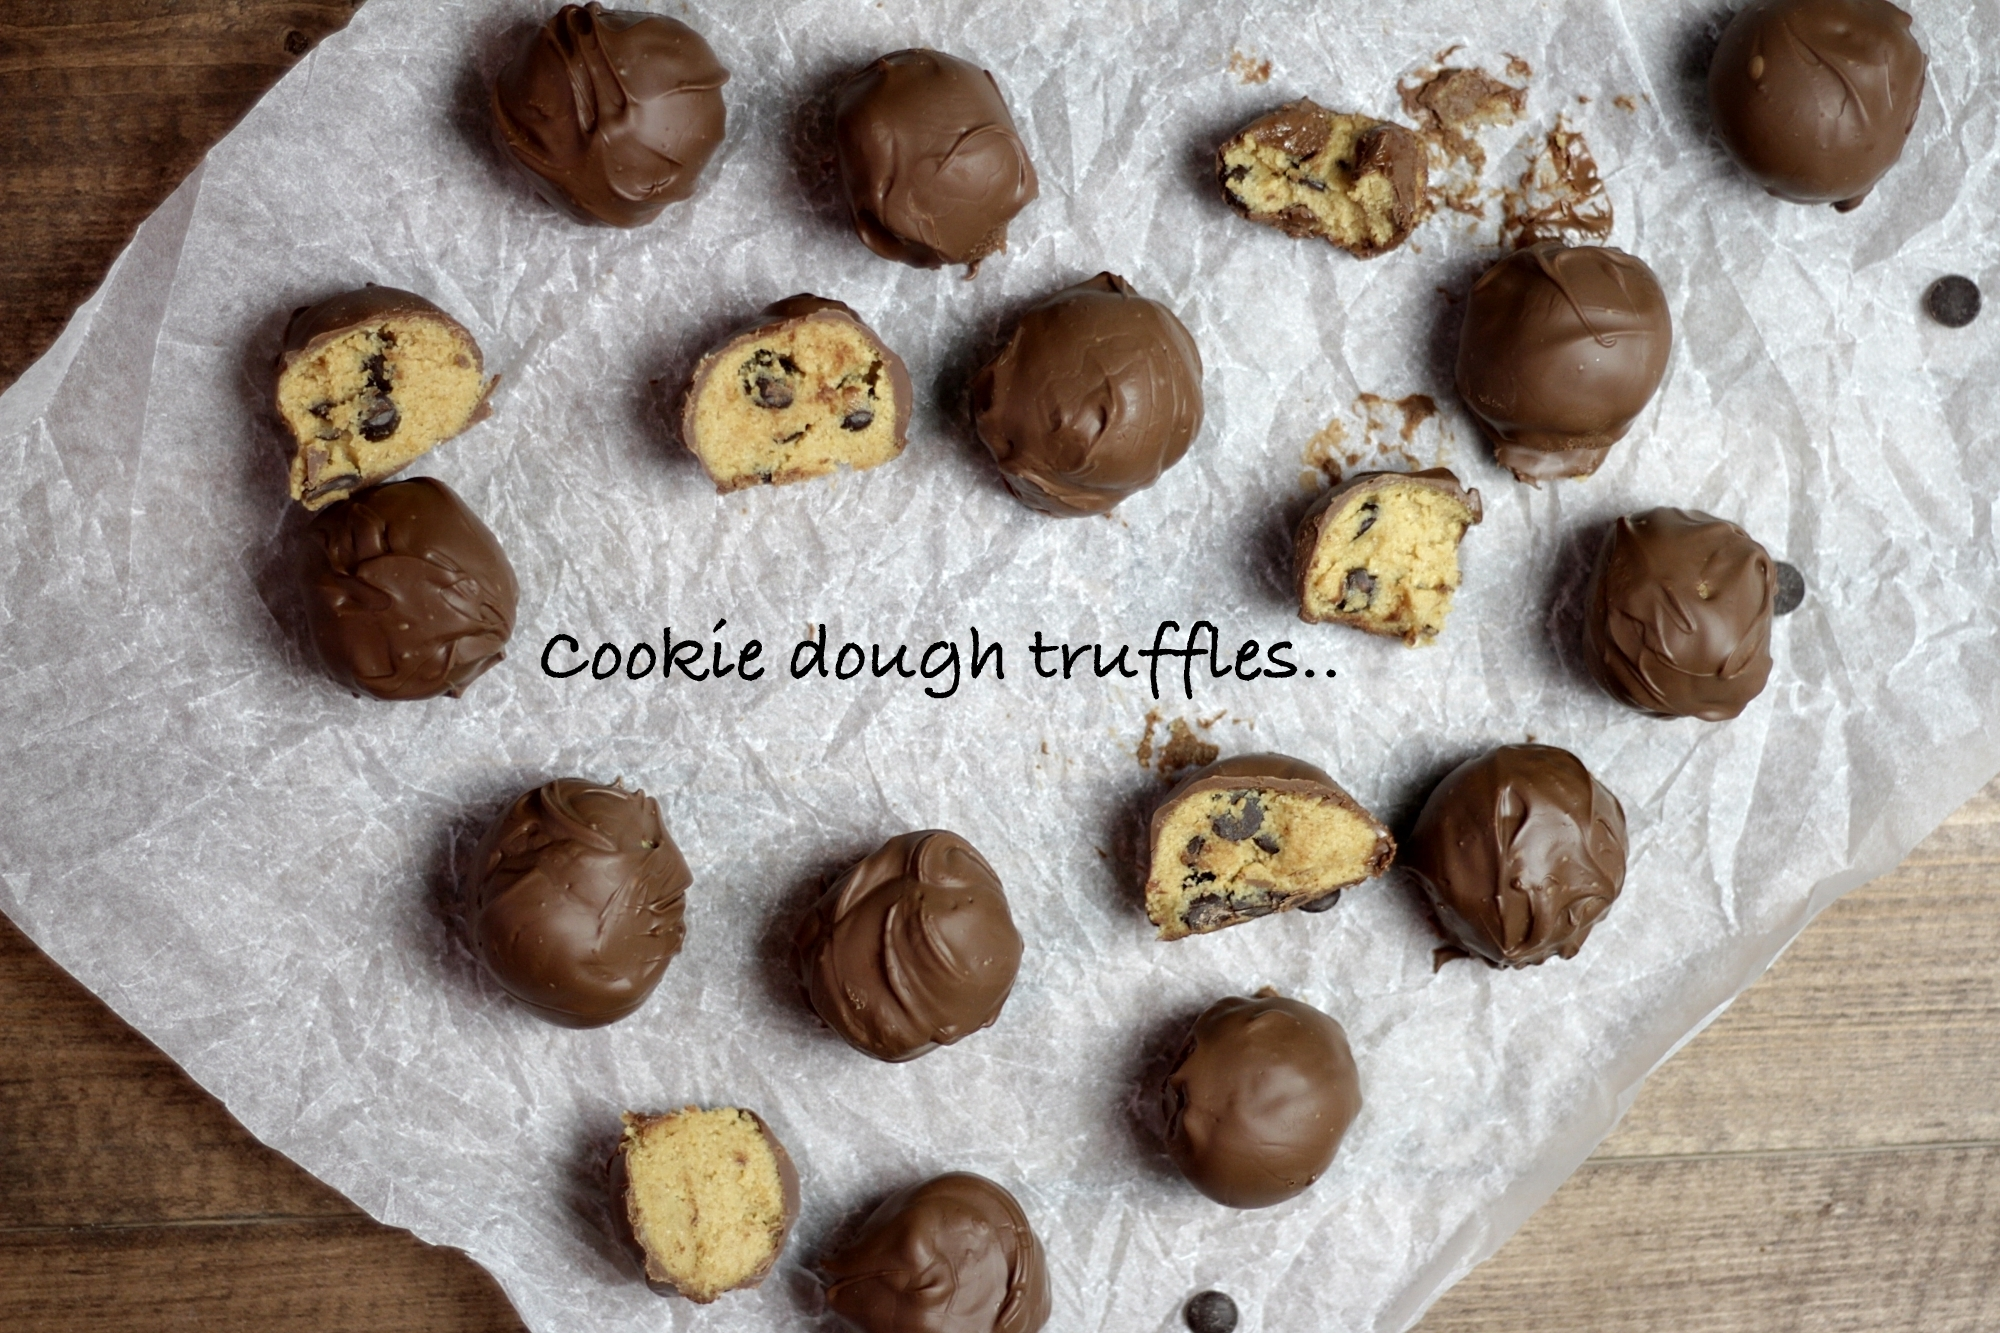 Cookie dough truffles